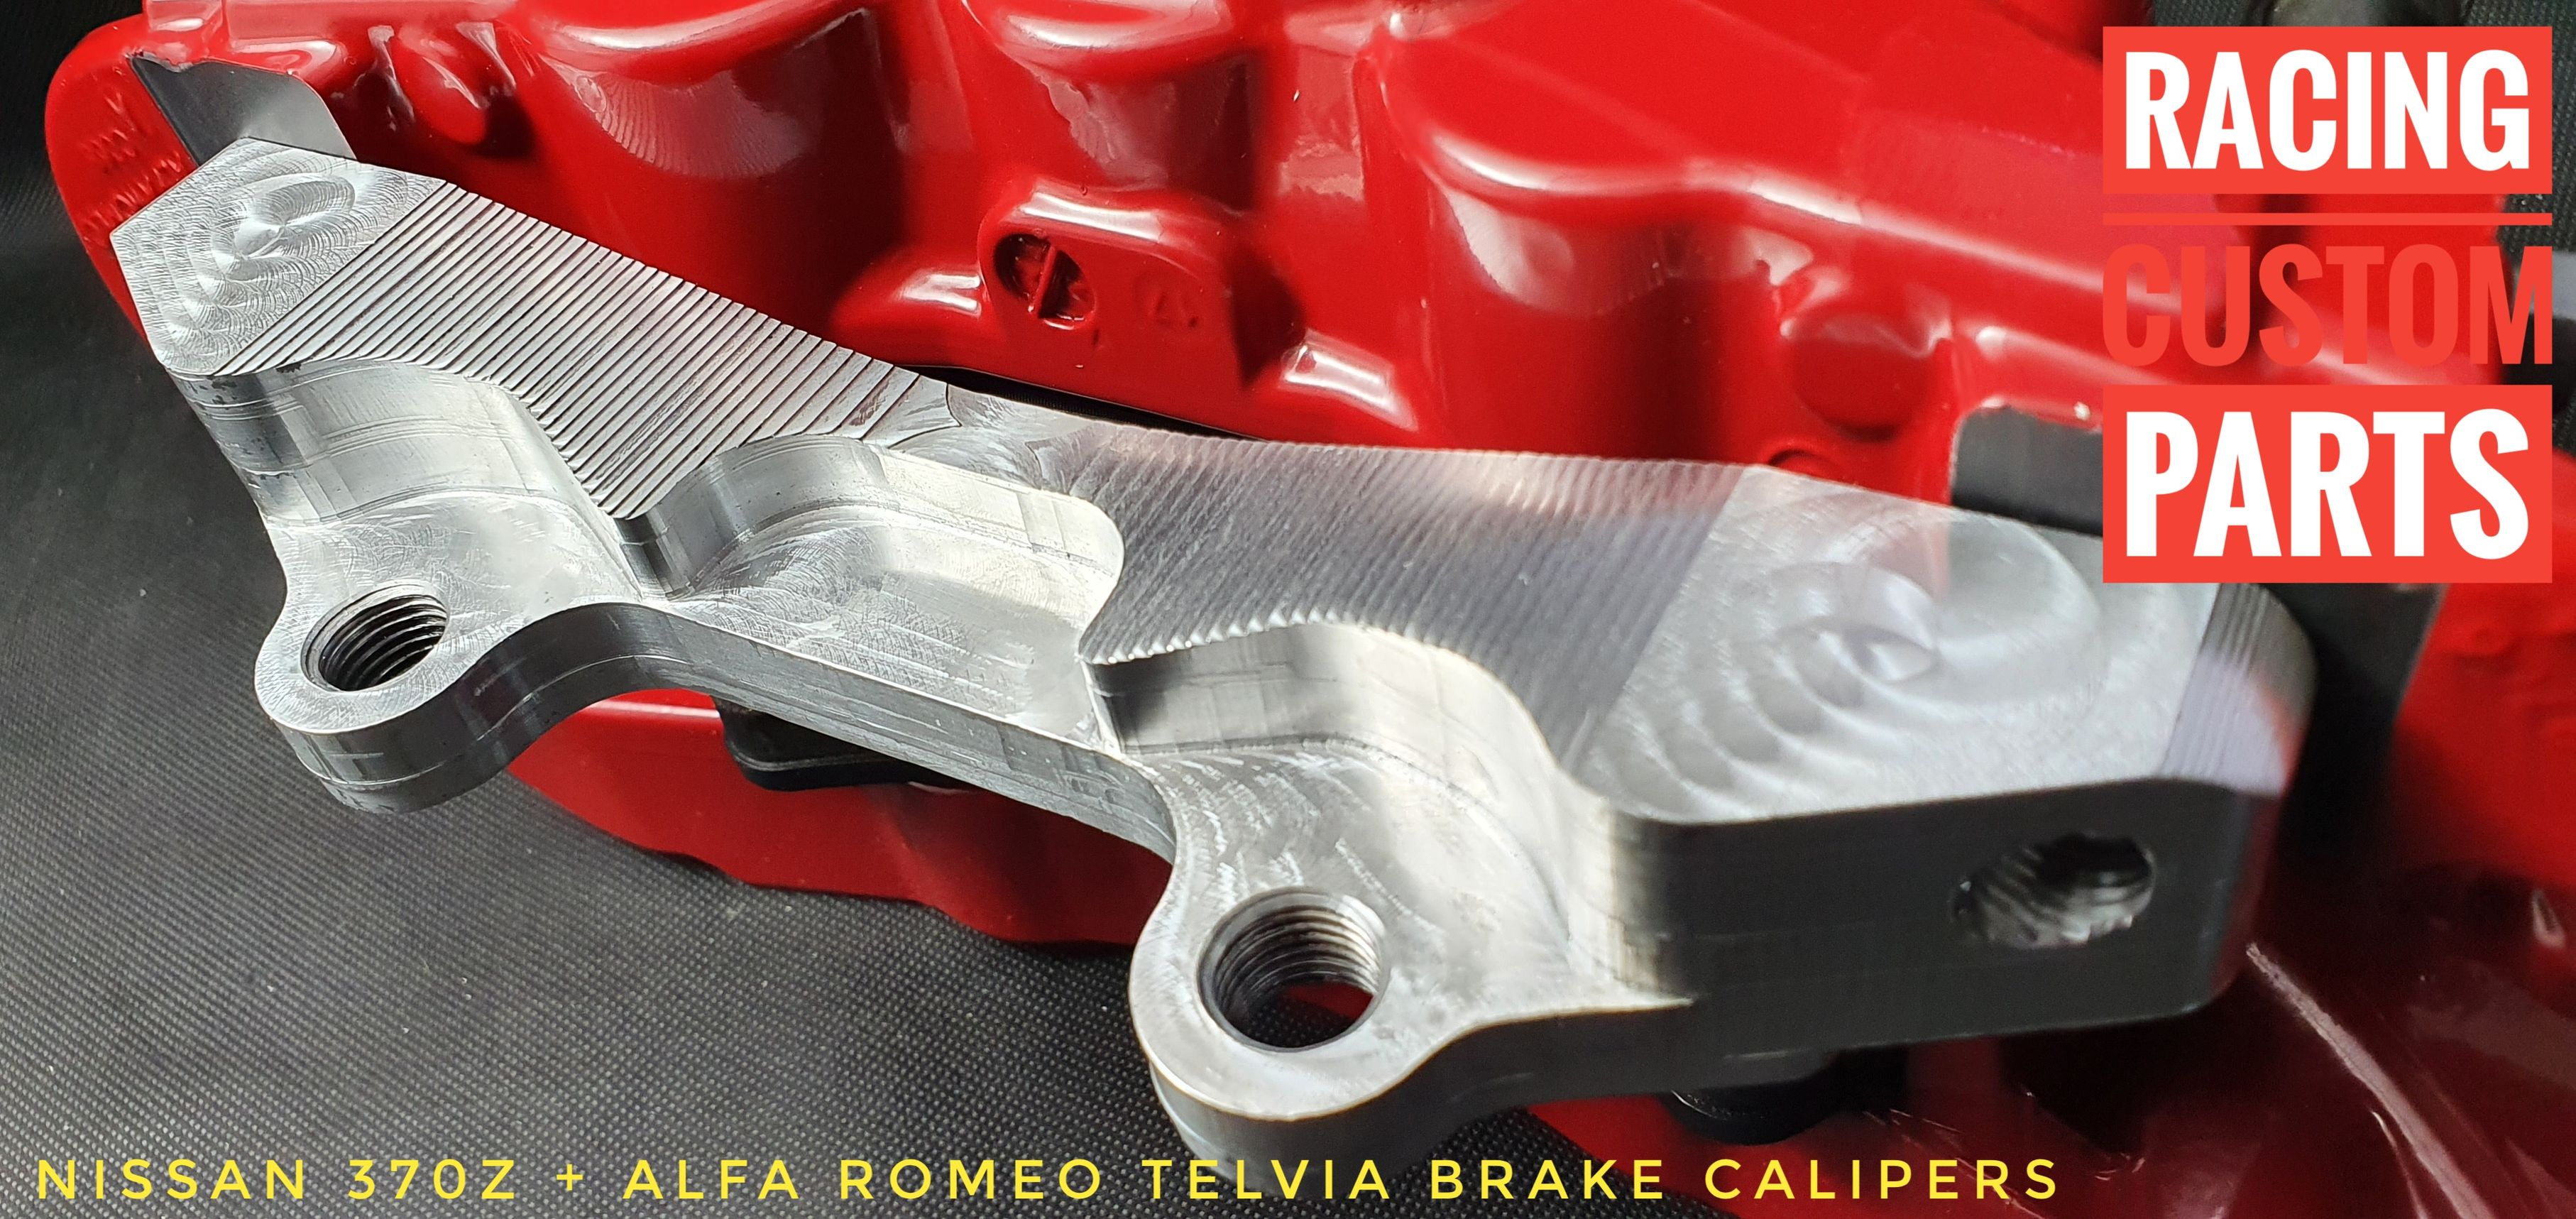 Nissan 370Z alfa romeo telvia brake calipers adapters billet cnc racing custom parts big brake kit